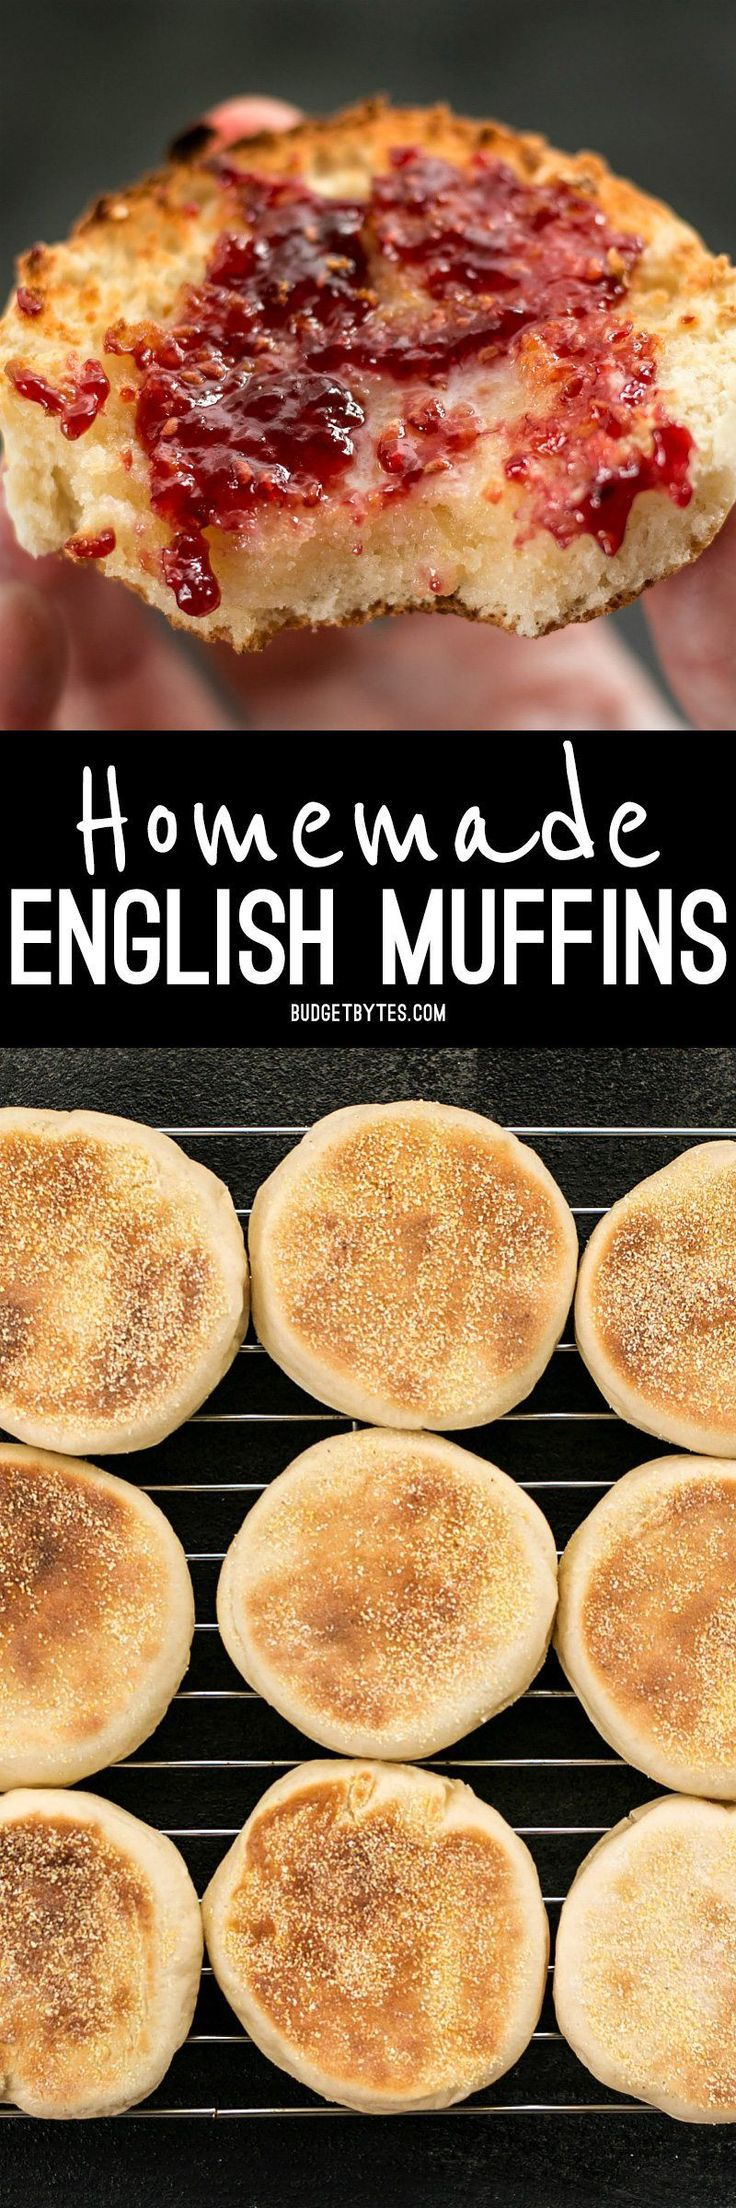 Homemade English muffins are fun to make, delicious, and cost just pennies each. Make this your next weekend project!